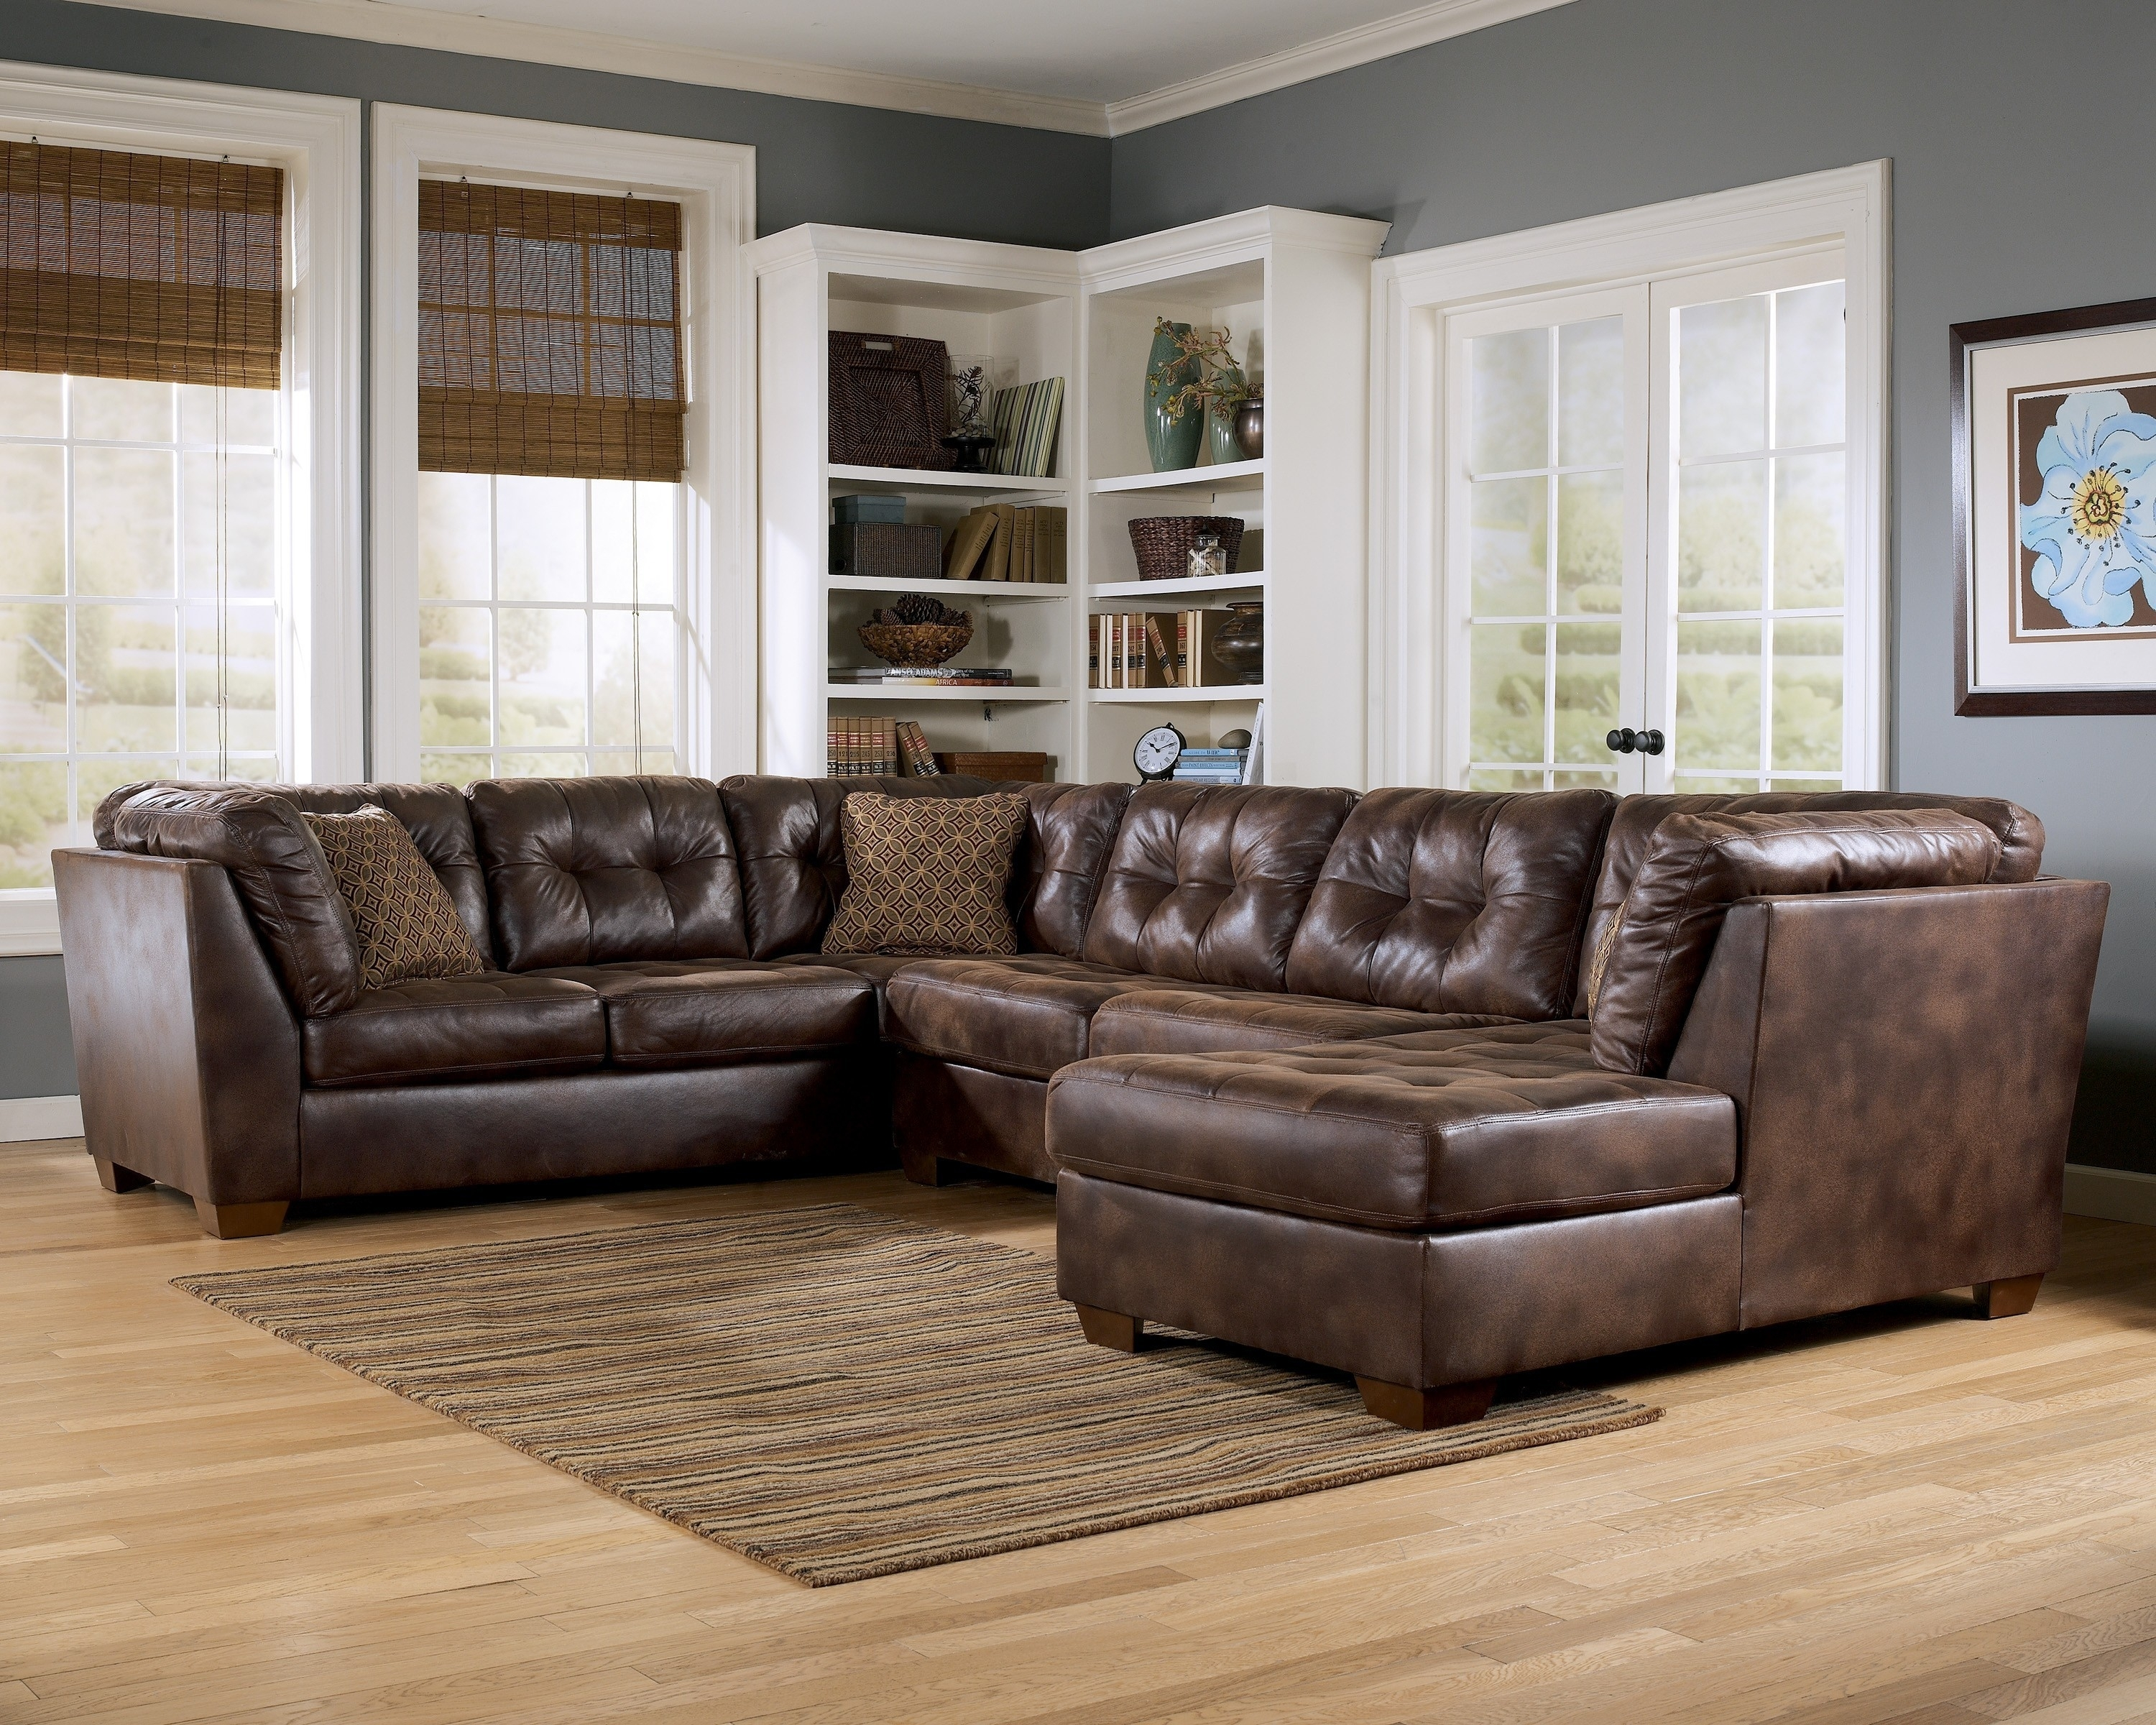 Furniture: American Freight Erie Pa | American Freight Sectionals throughout Erie Pa Sectional Sofas (Image 2 of 10)